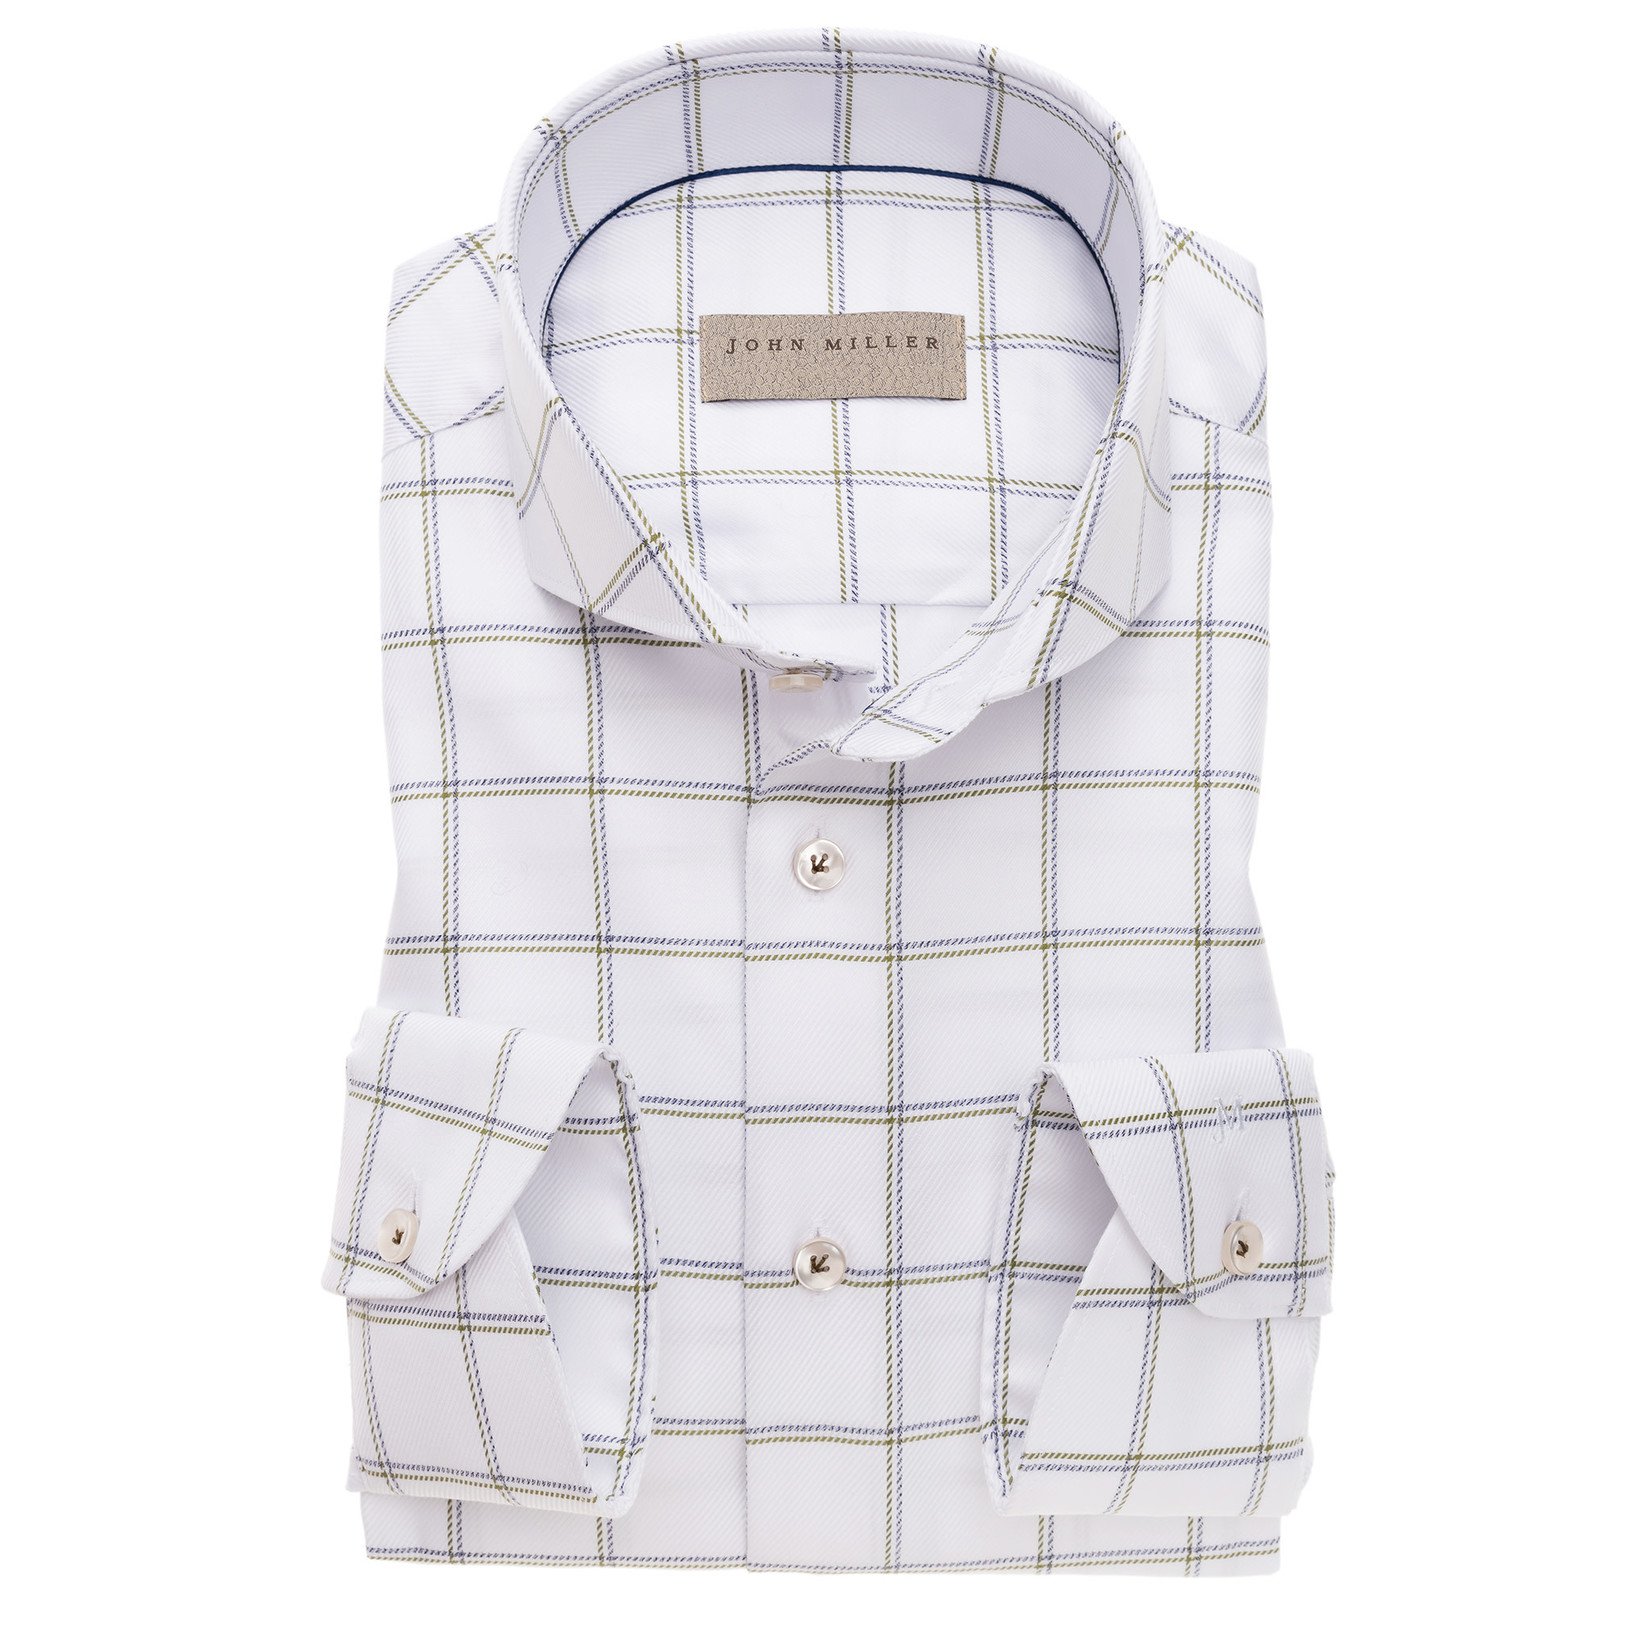 John Miller tailored fit shirt wit combi met cut away boord